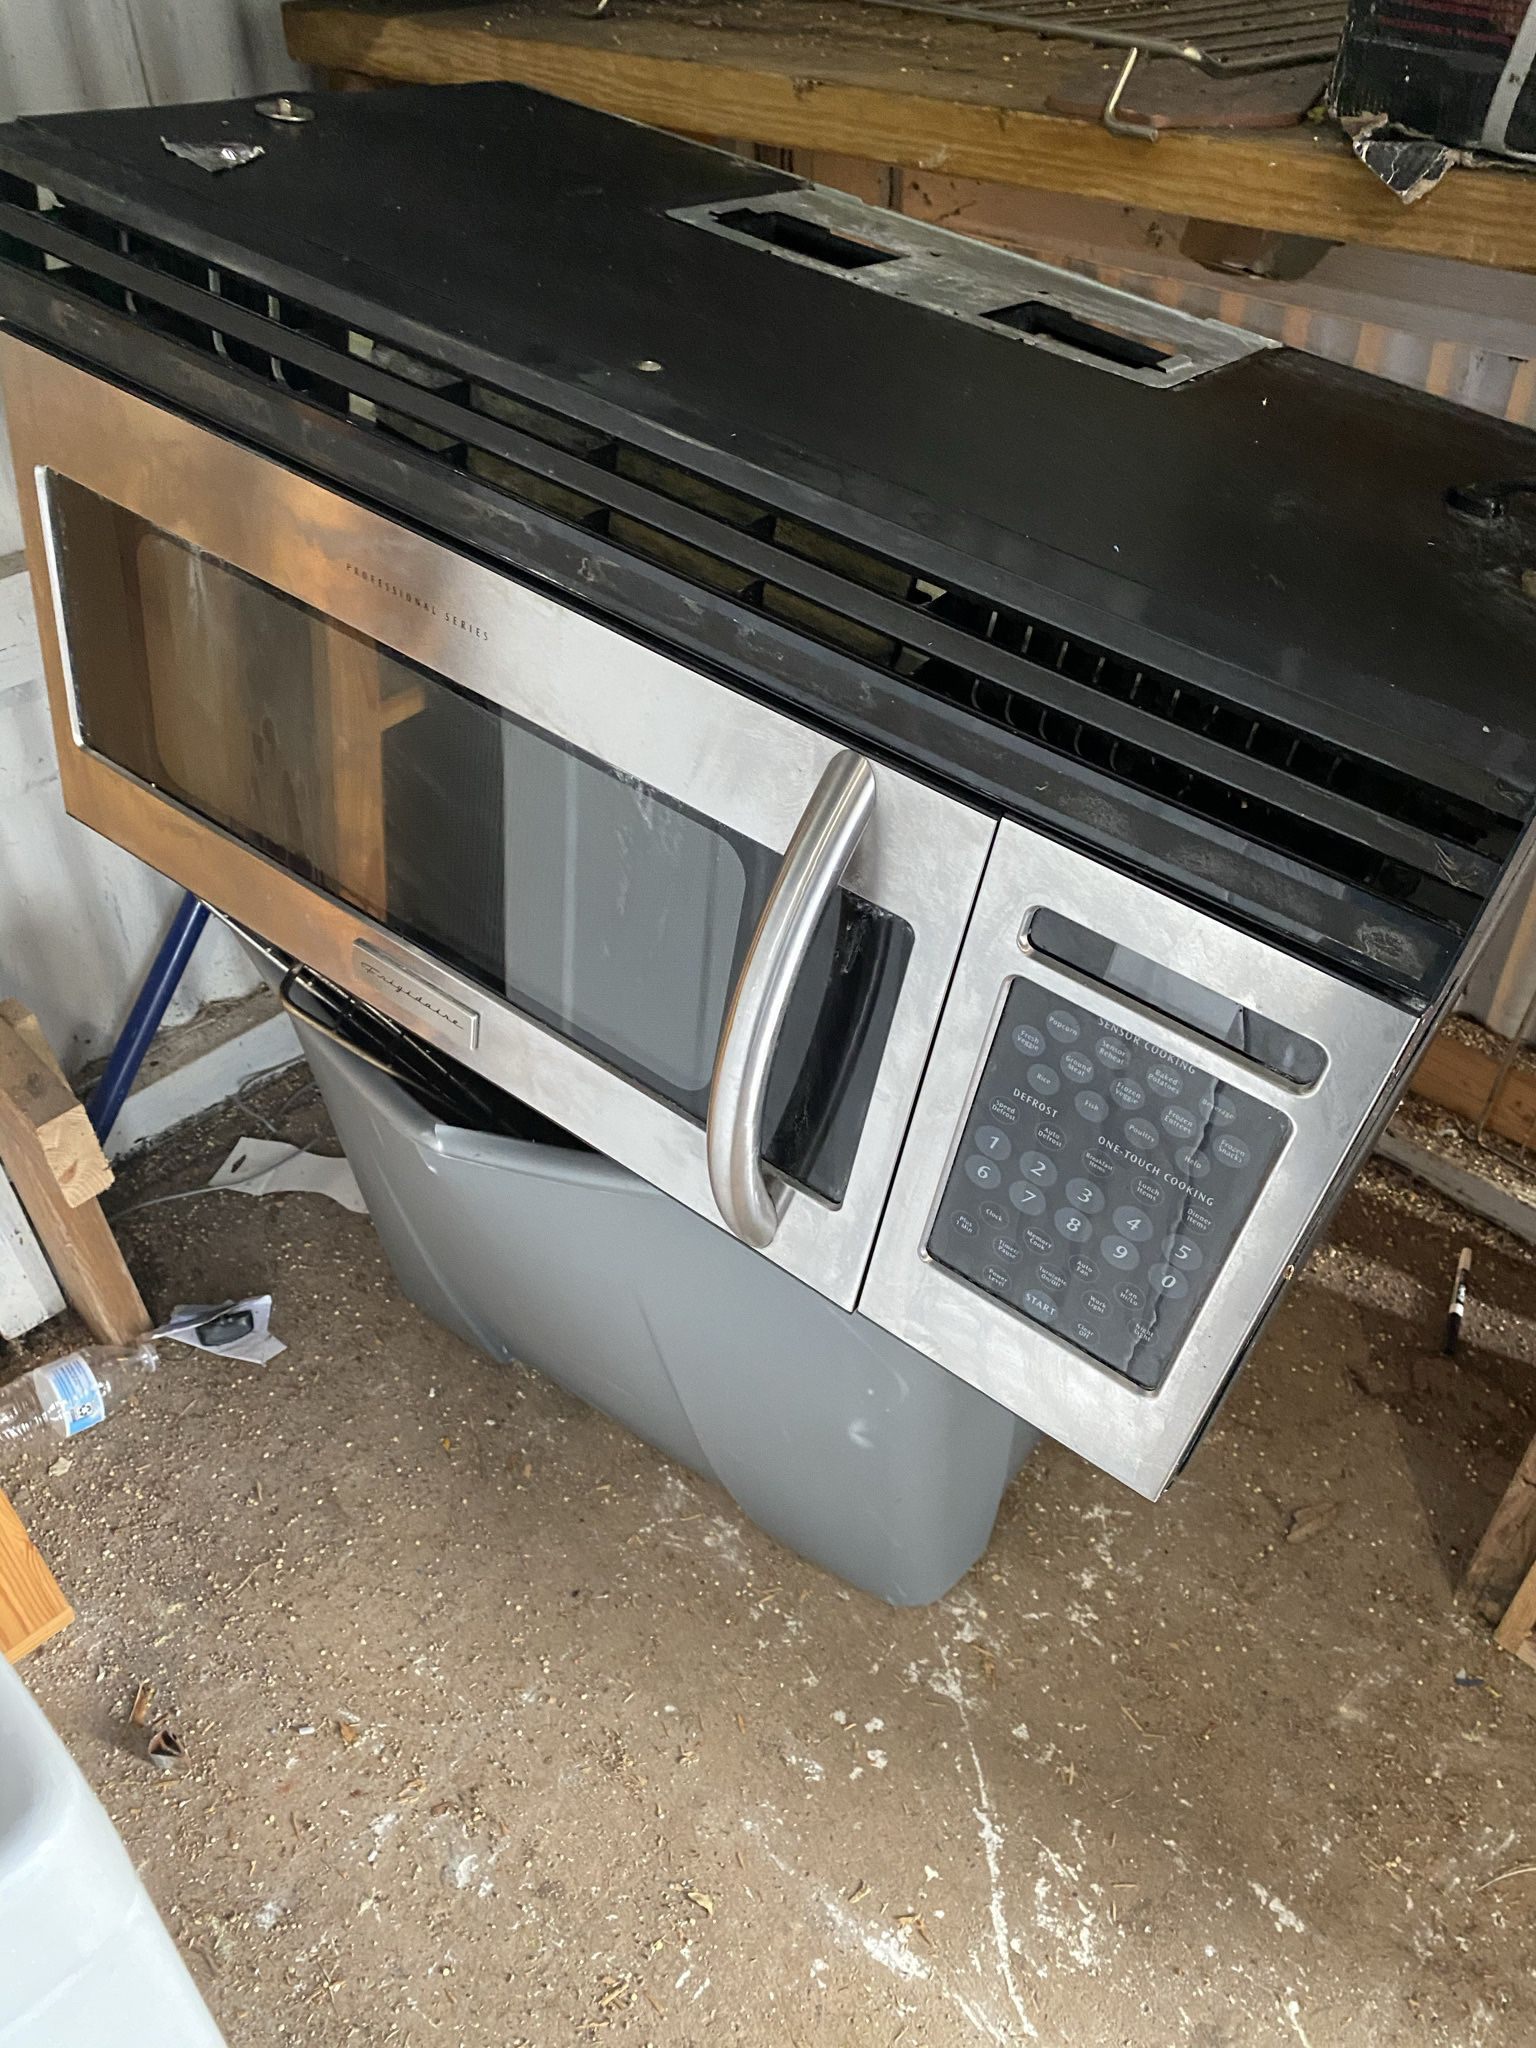 Stainless Steel Microwave And Dishwasher All Working Perfect $250